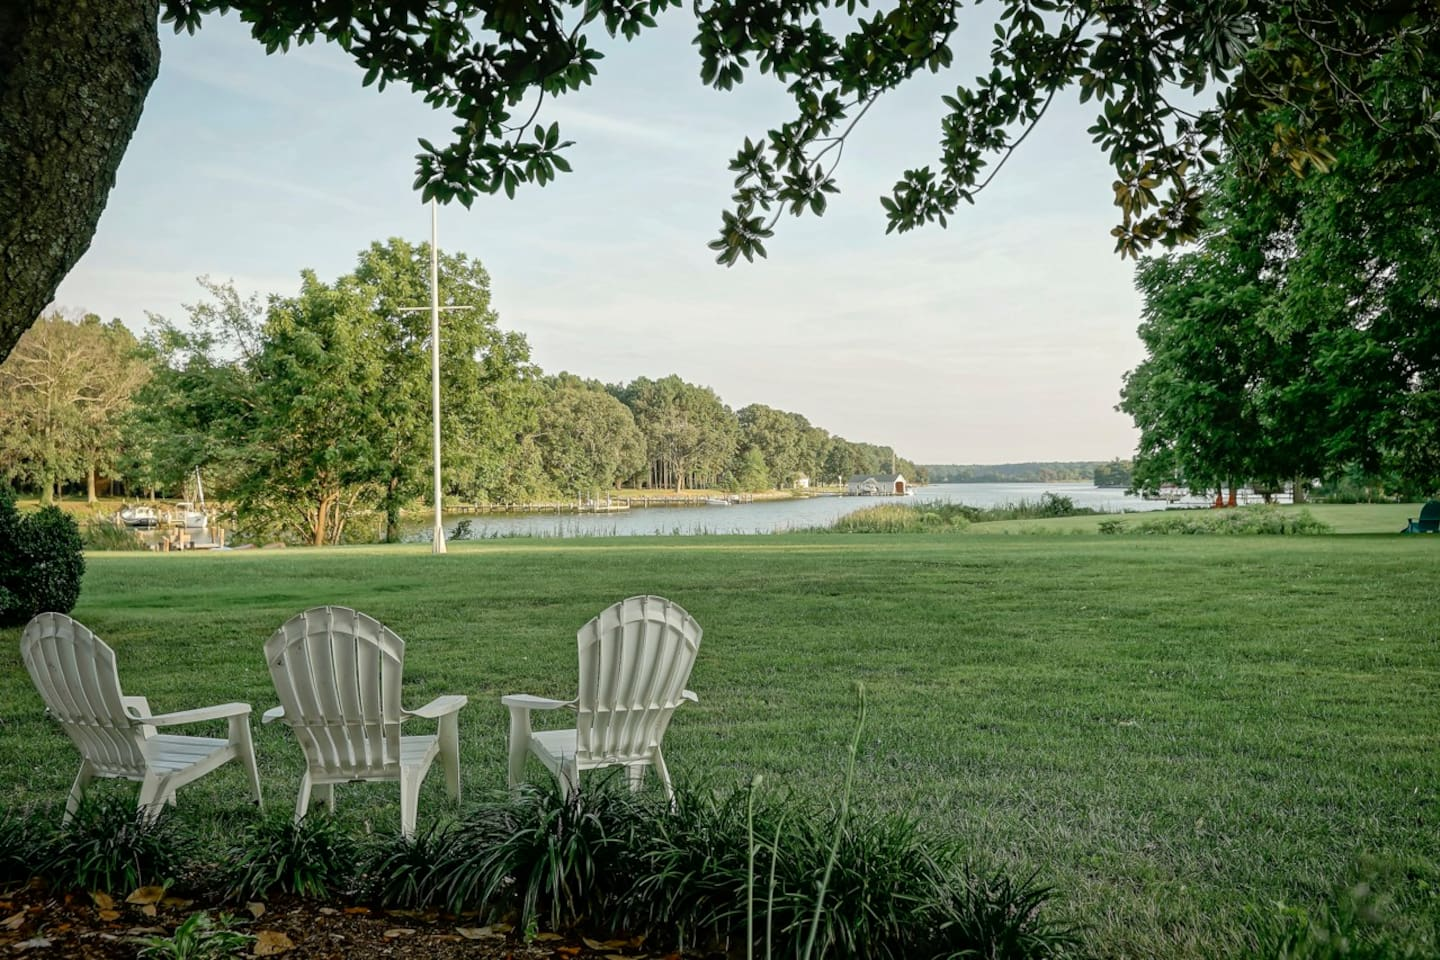 Serenity at Combsberry - just imagine sitting here looking out over the tranquil water scene with a cocktail in hand!